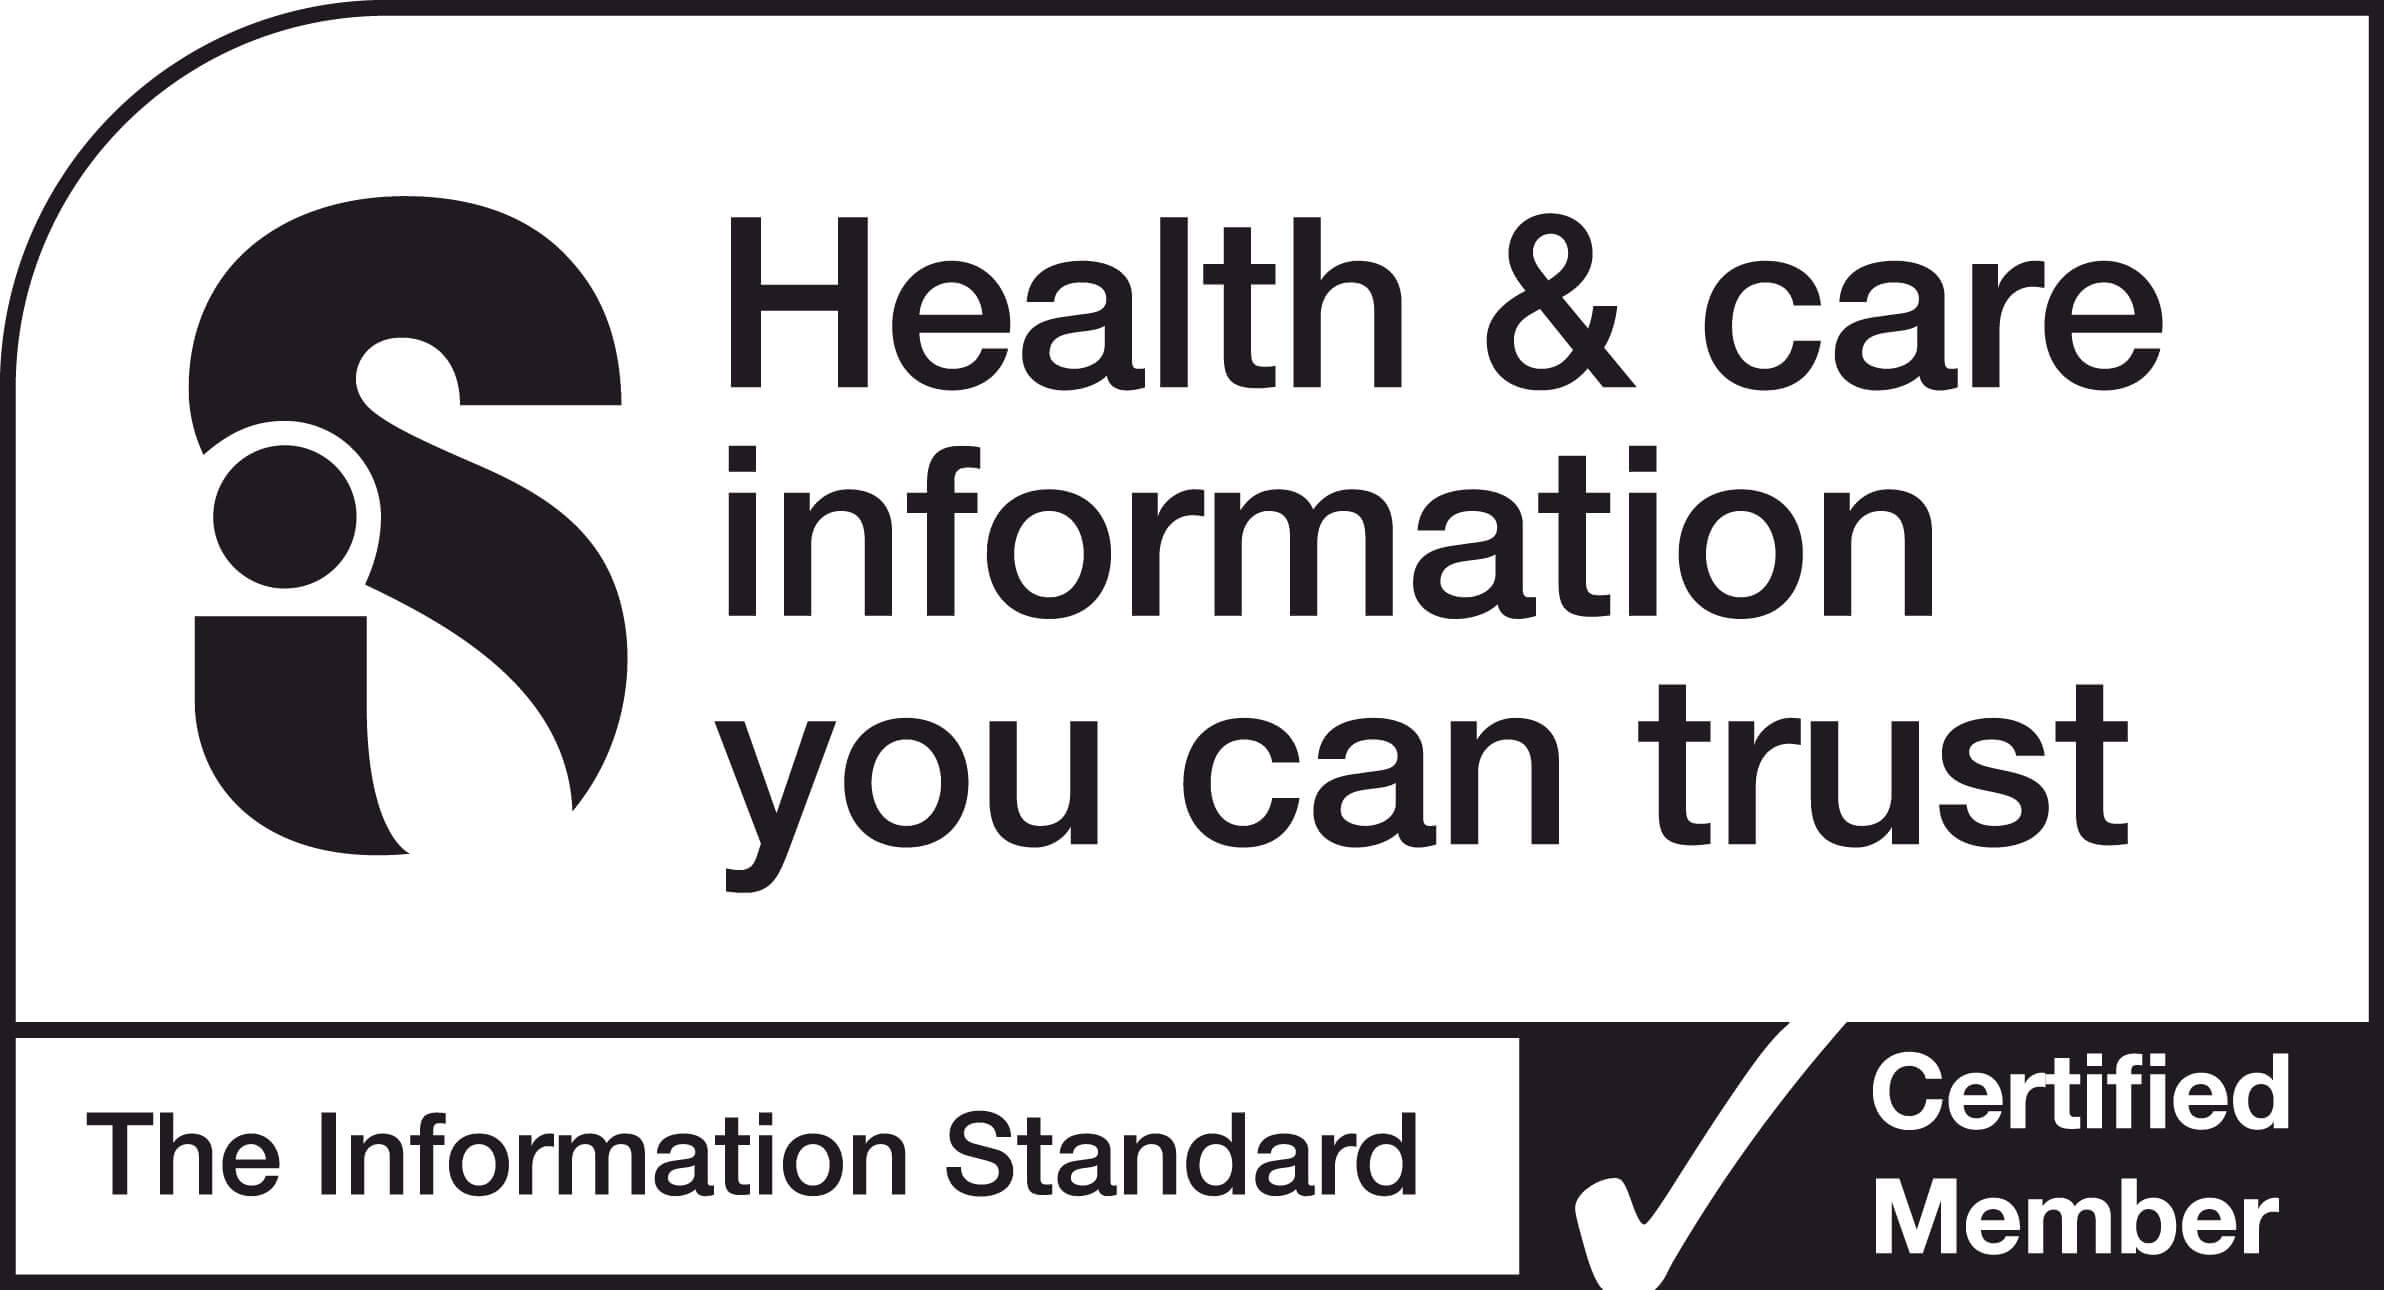 Produced in accordance with the NHS England's Information Standard